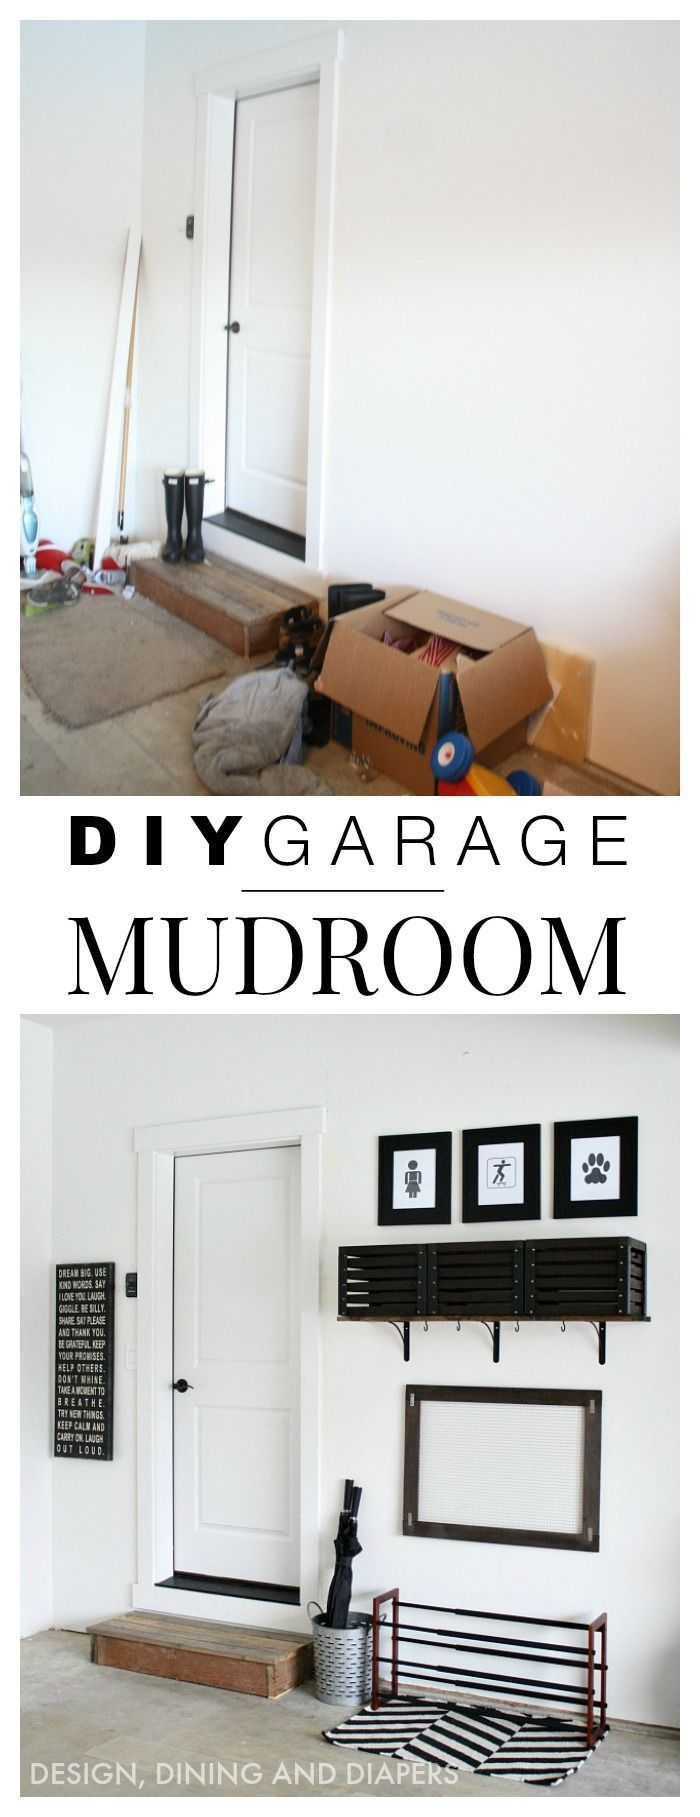 120 best Mud Room images on Pinterest | Brick flooring, Cucina and ...